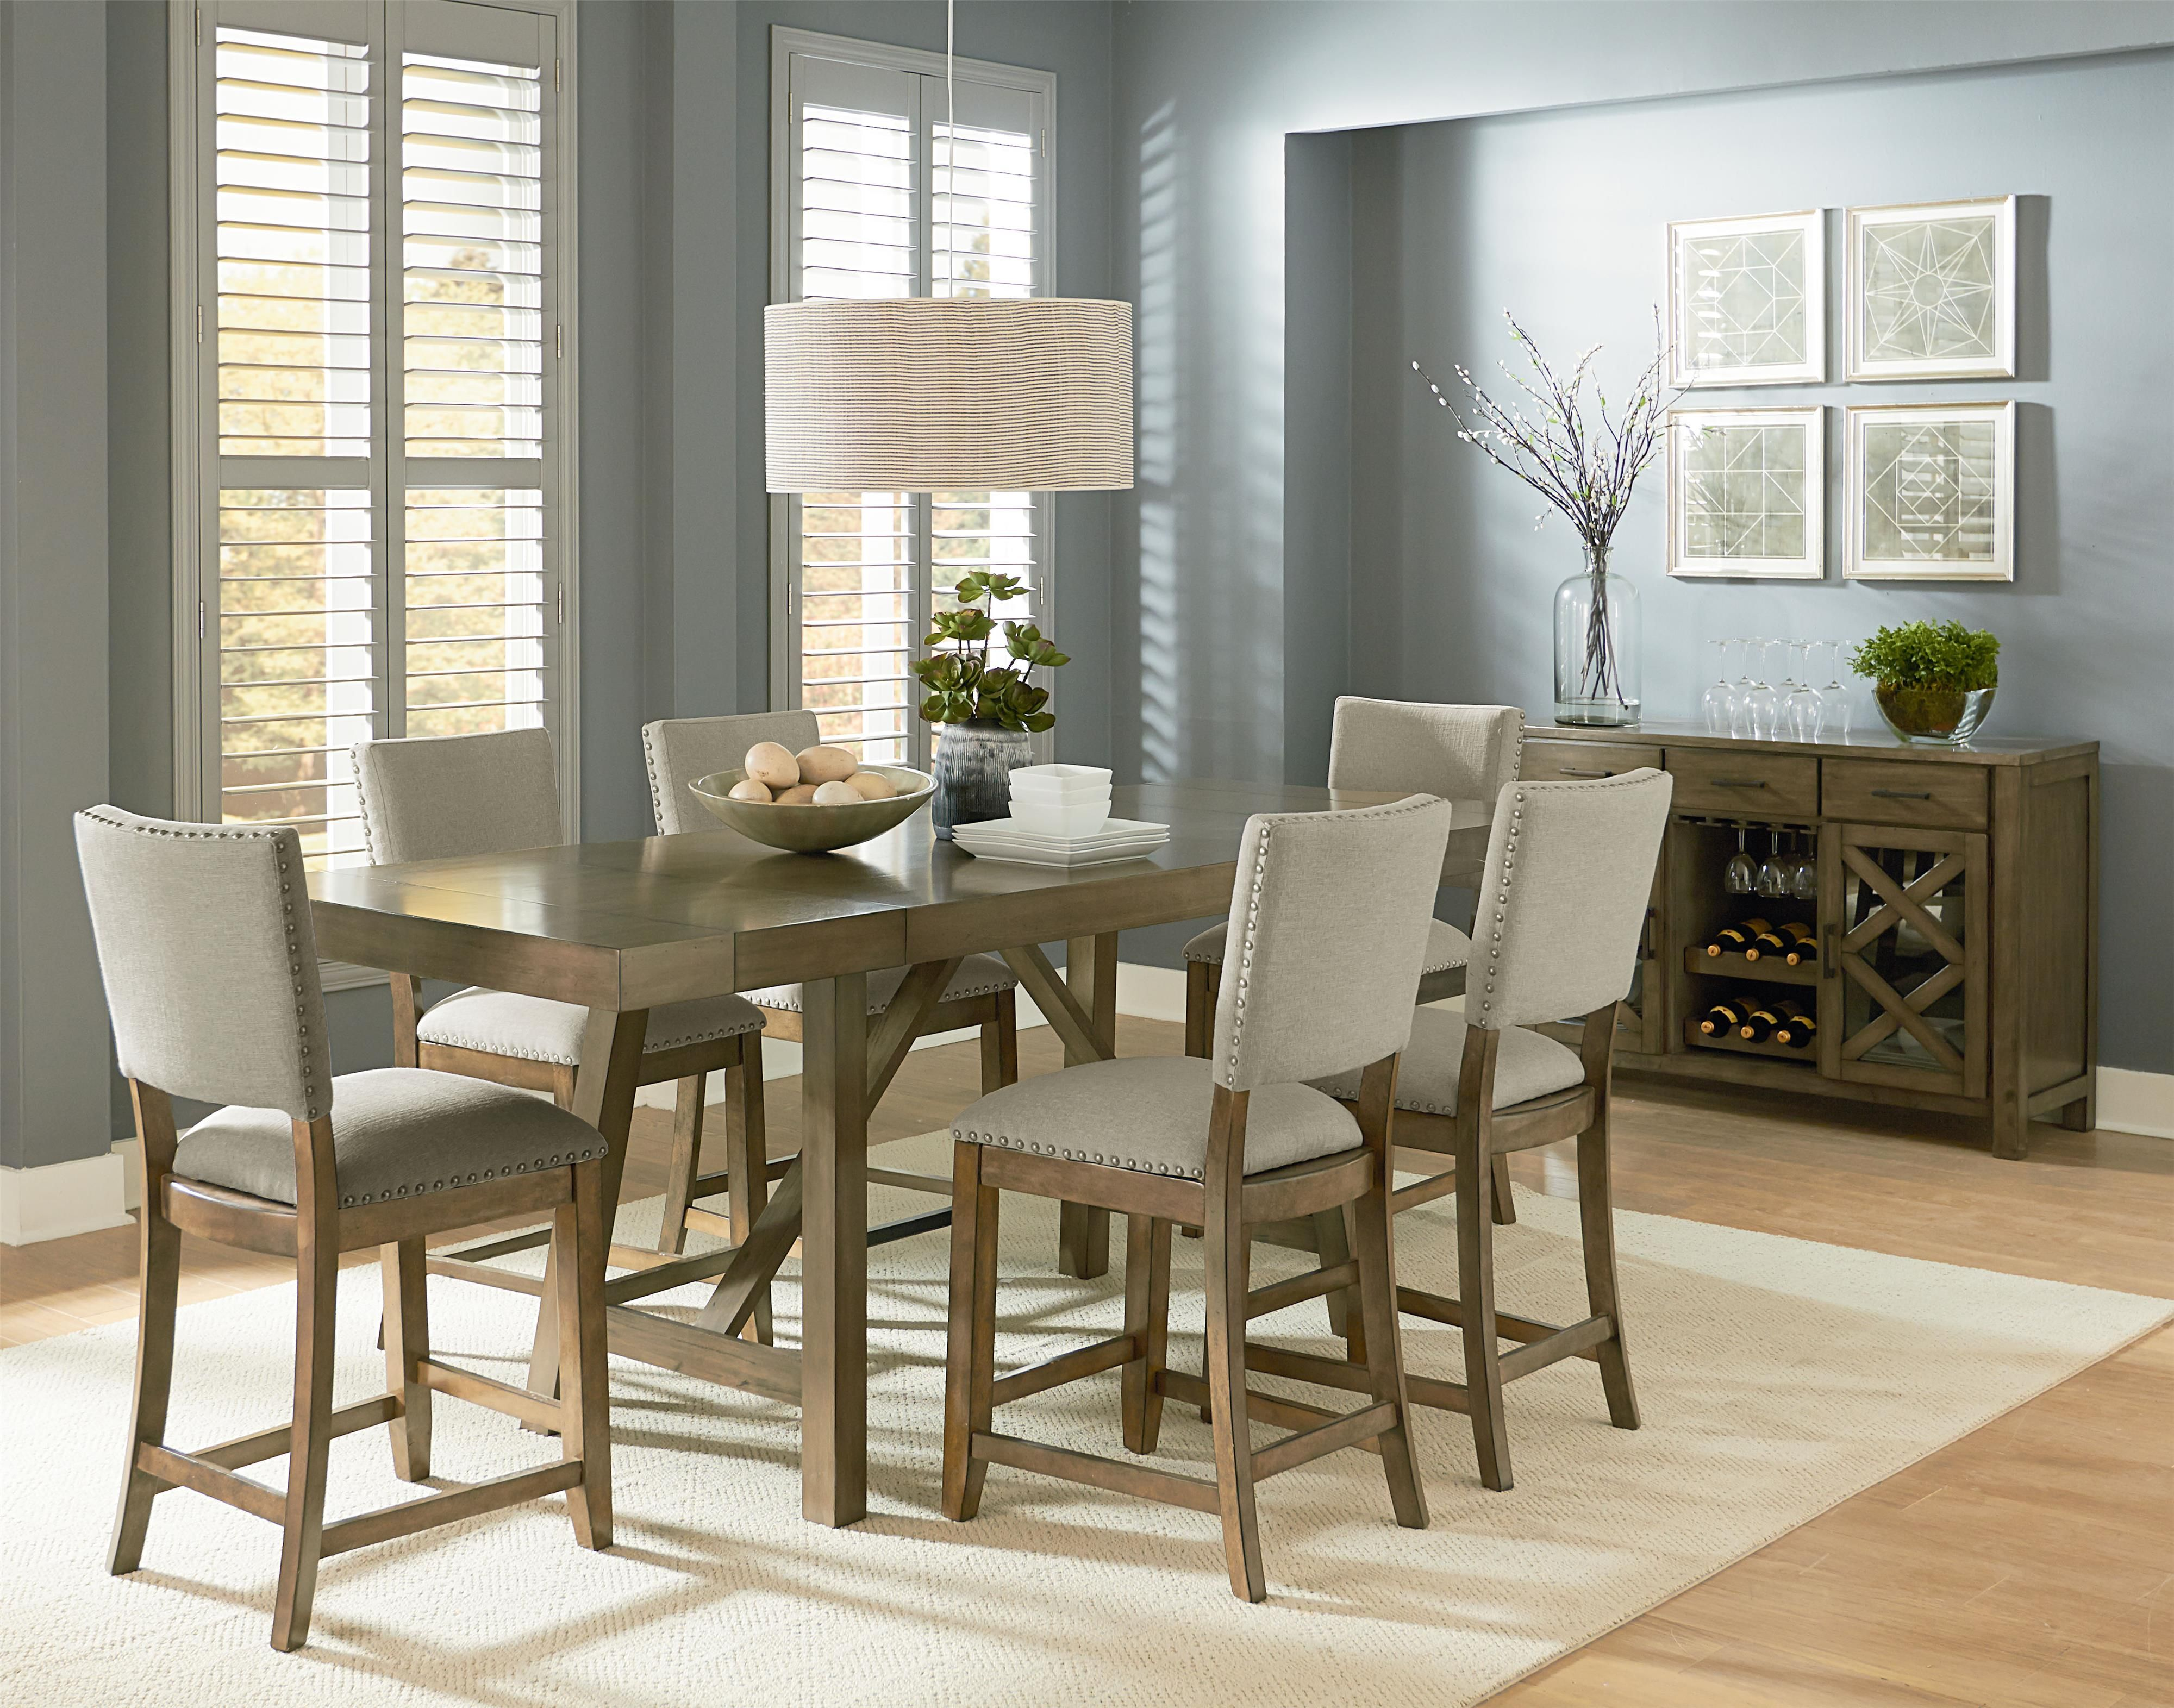 Omaha Grey Casual Dining Room Group by Standard Furniture | Van-Hill ...